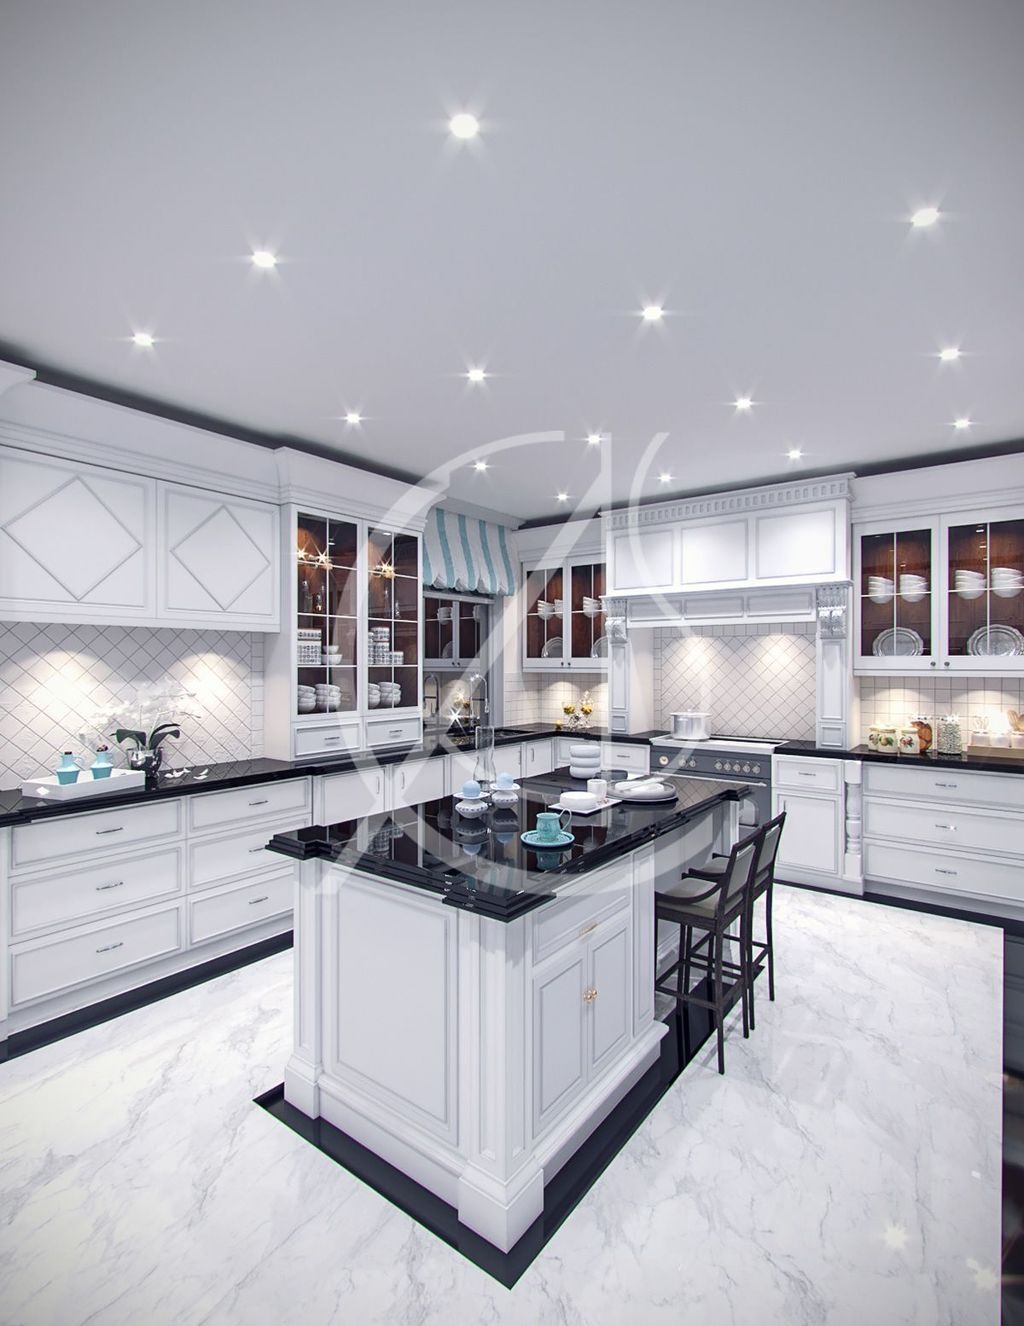 Cool 35 Cheap Marble Kitchen Design Ideas More At Https Homyfeed Com 2019 04 19 35 Cheap Marble K Modern Kitchen Design Interior Design Kitchen Floor Design